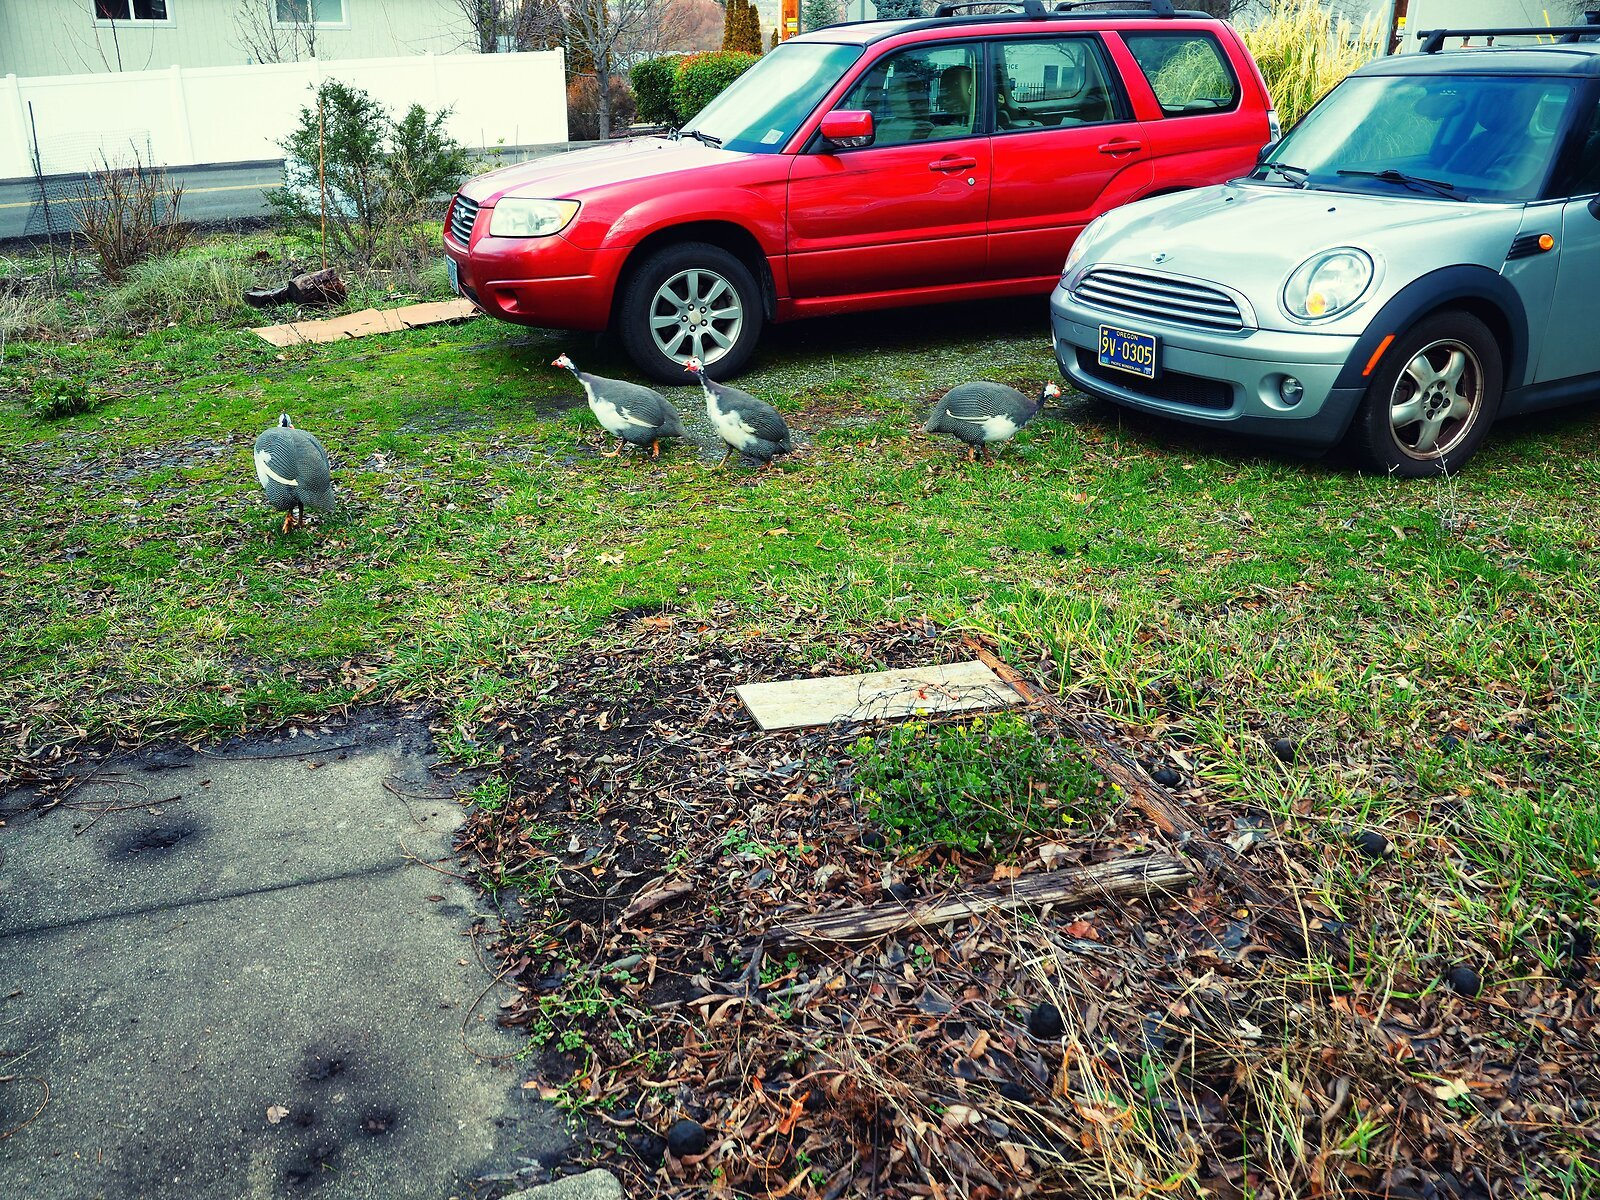 PenF_Jan8_21_guinea_hens_and_cars.jpg